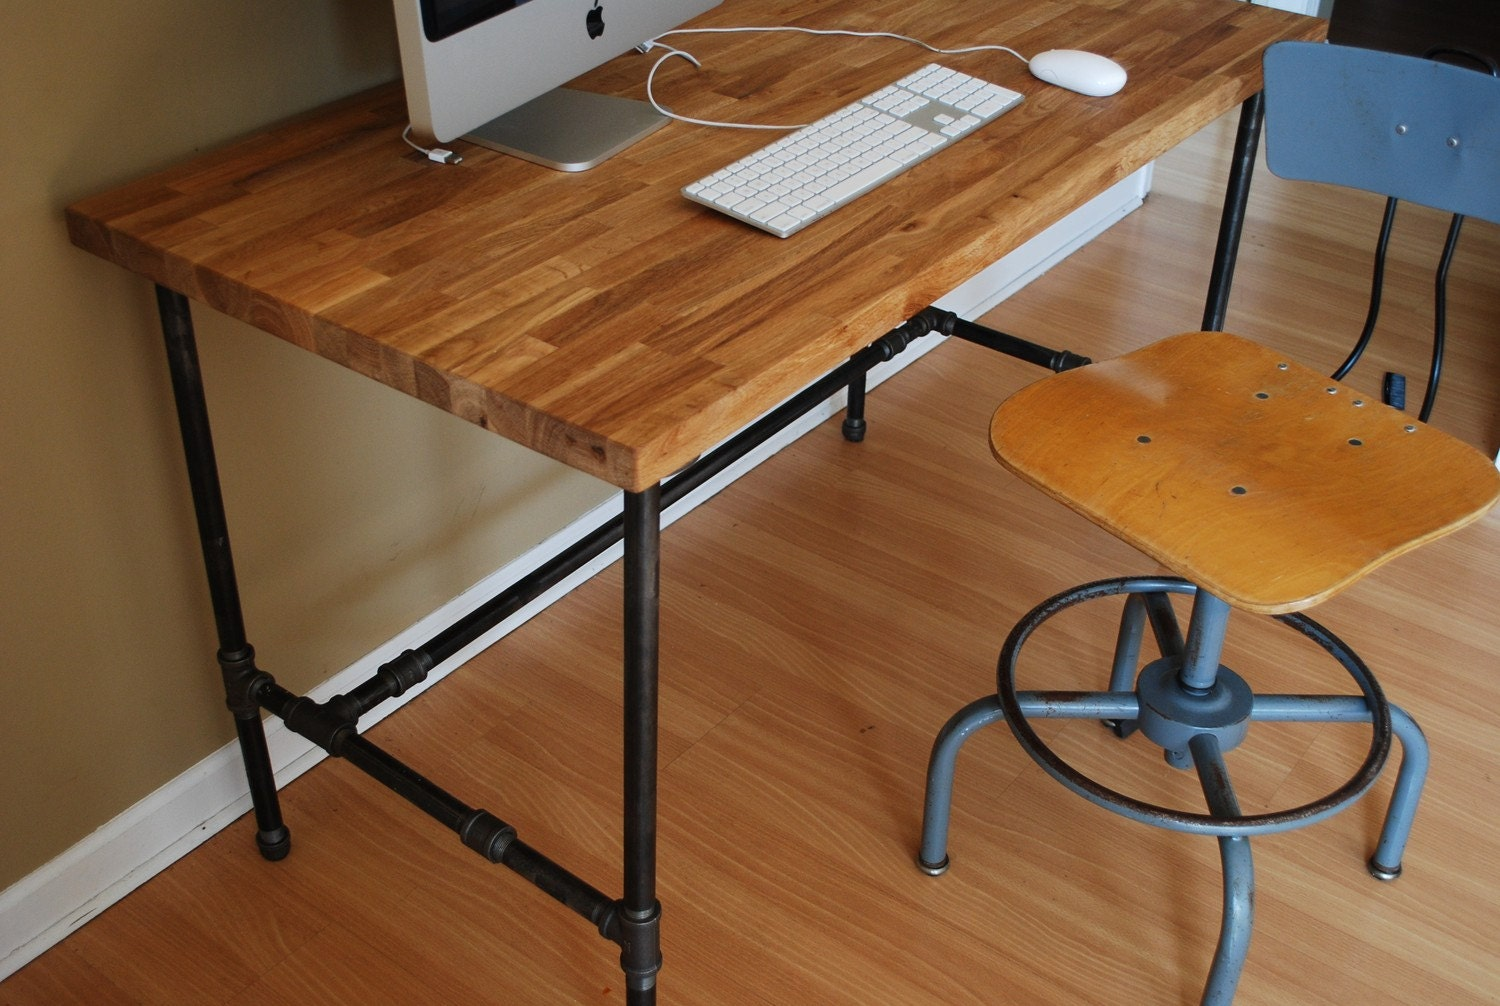 Industrial desk with Oak top and steel pipe legs : ilfullxfull245562393 from etsy.com size 1500 x 1006 jpeg 278kB